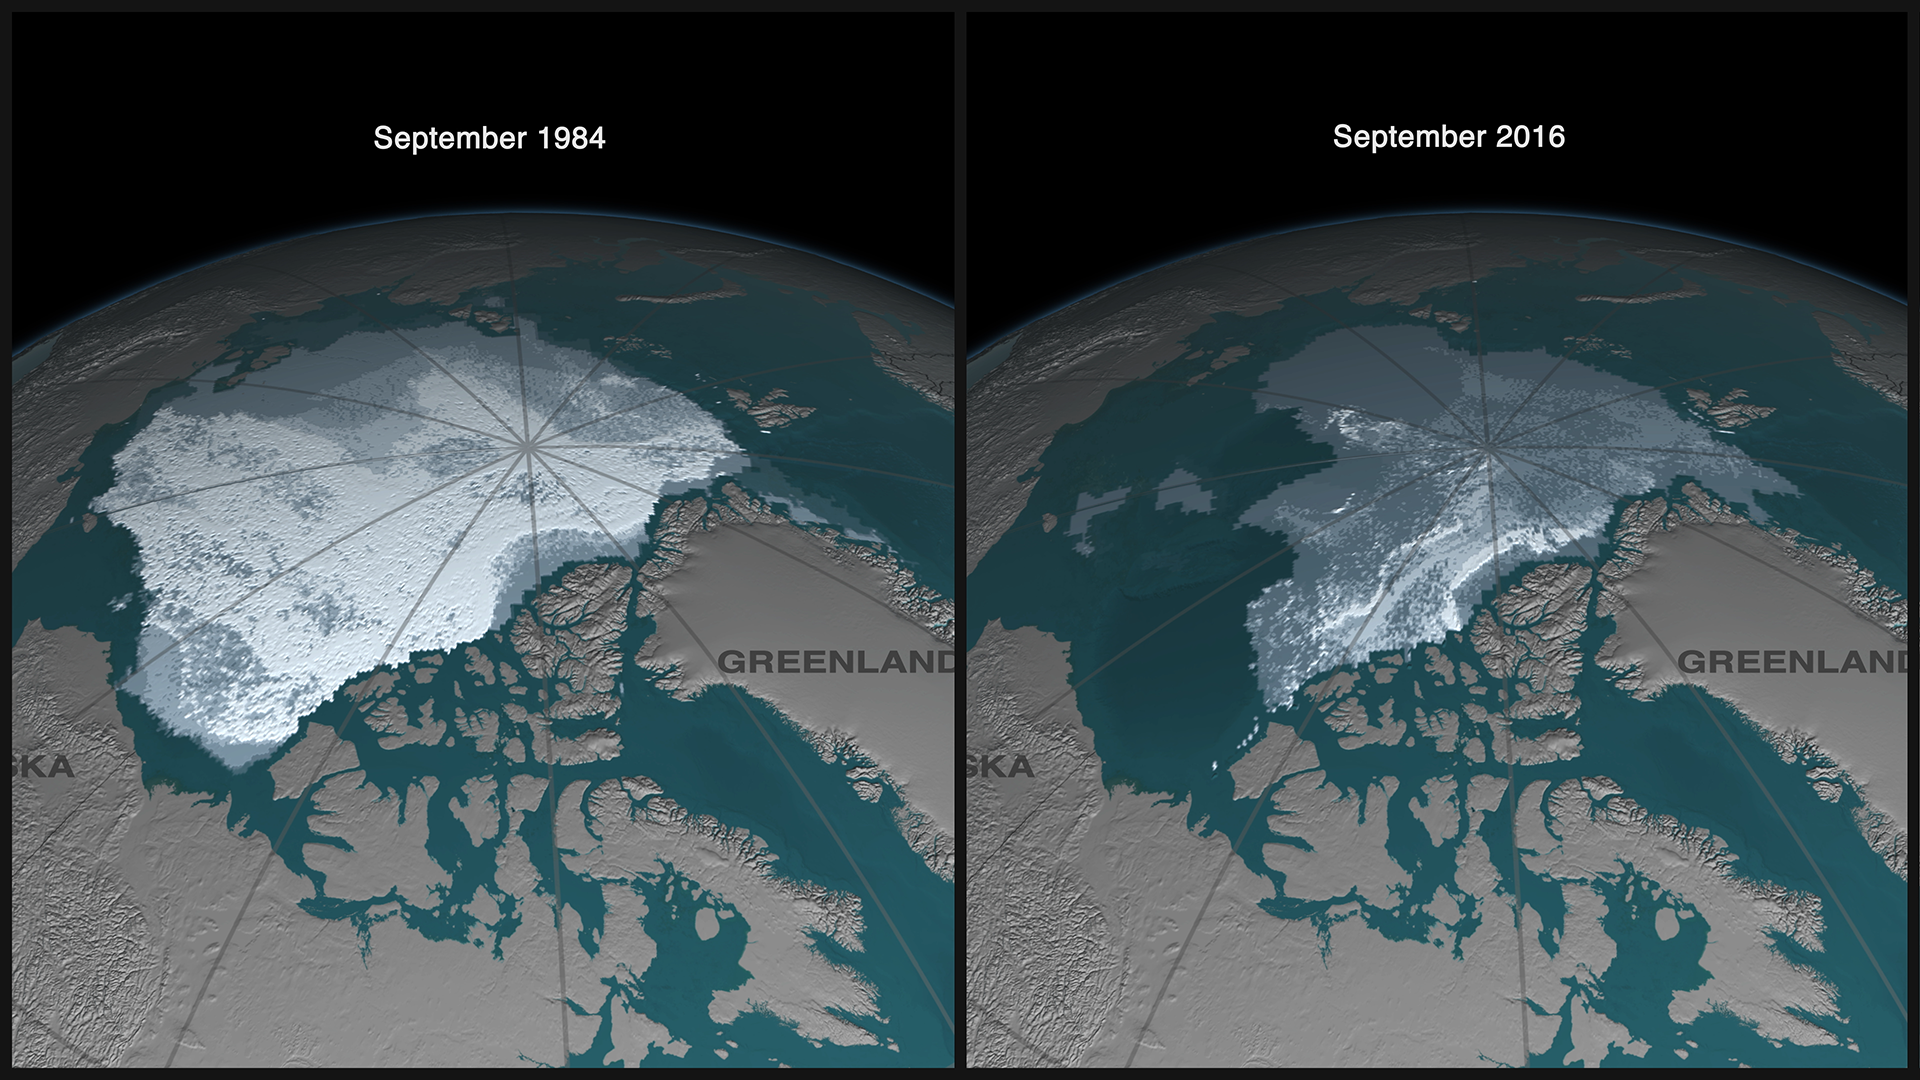 At 1984, most of the Arctic was covered in thick and old ice. Just a slice of the same type remains in 2016.